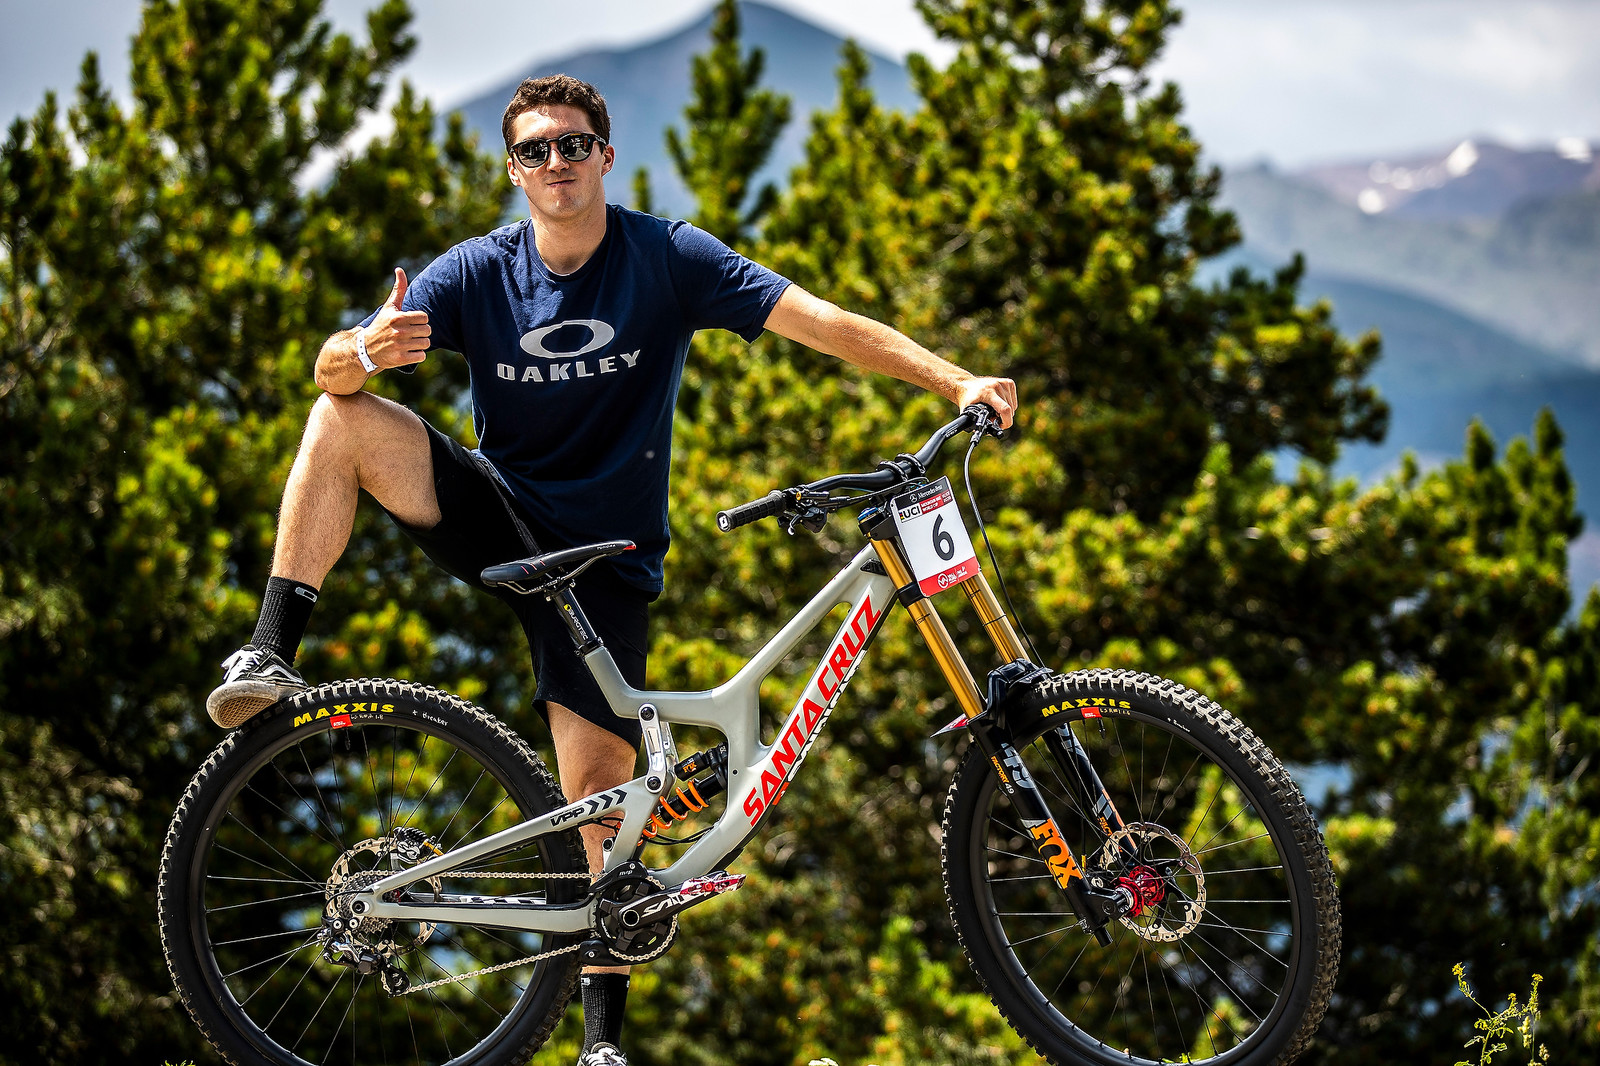 PIT BITS - Andorra World Cup - Luca Shaw's Santa Cruz V10 - PIT BITS - Andorra World Cup Downhill - Mountain Biking Pictures - Vital MTB